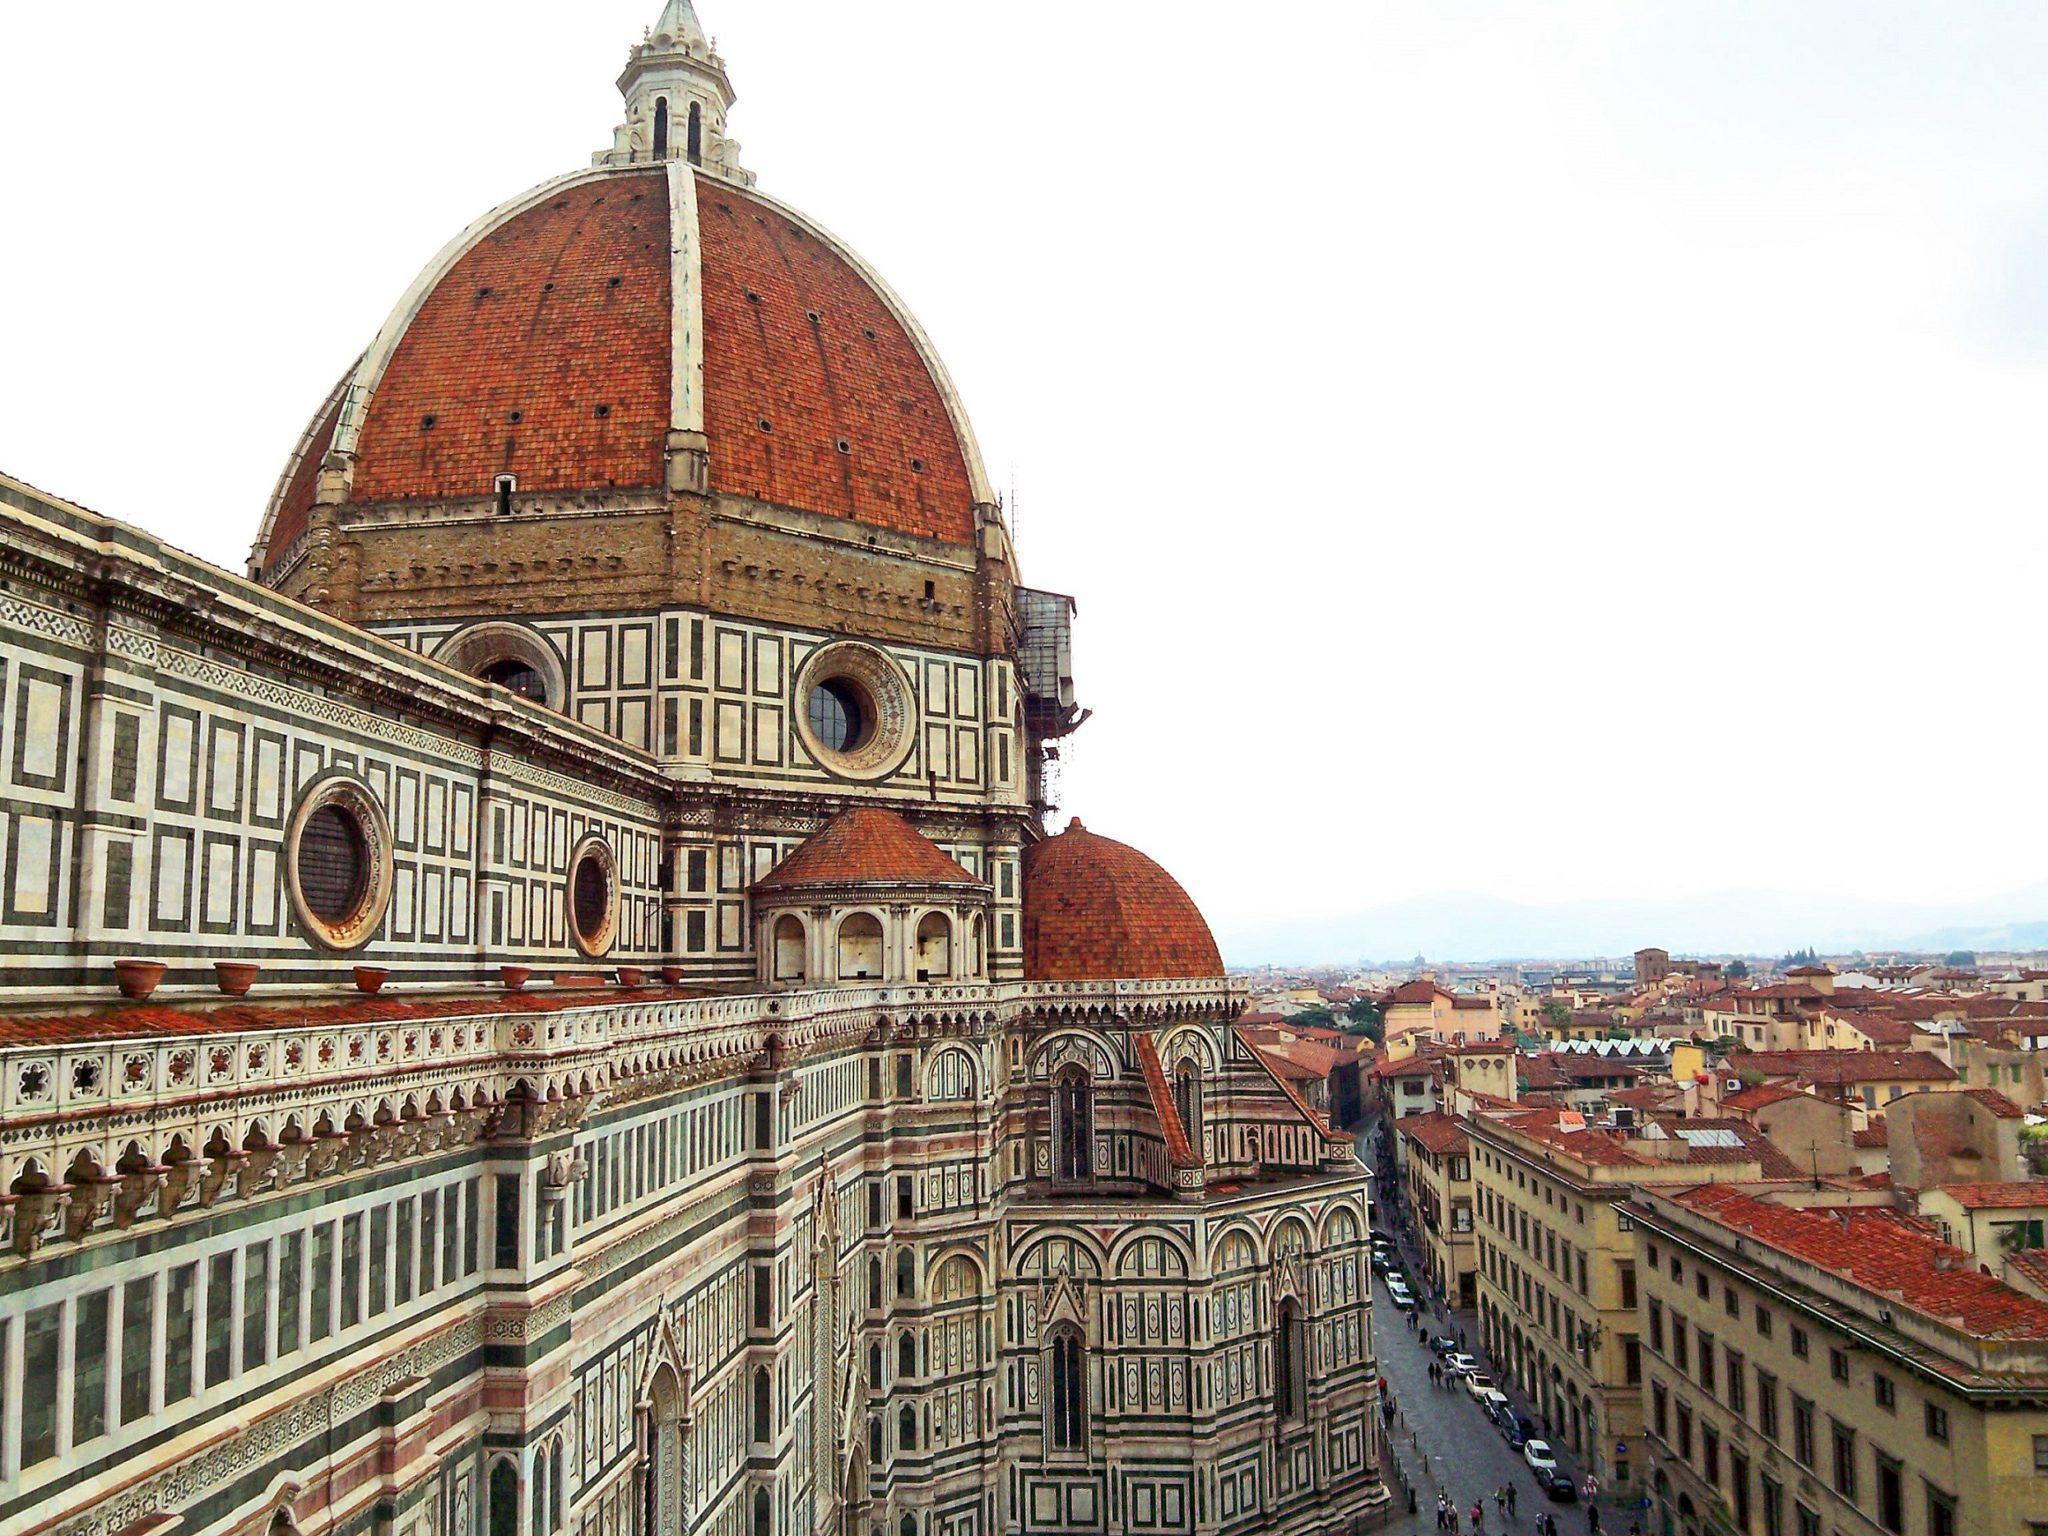 Colorful walls and dome of Santa Maria del Fiore in Florence, Italy